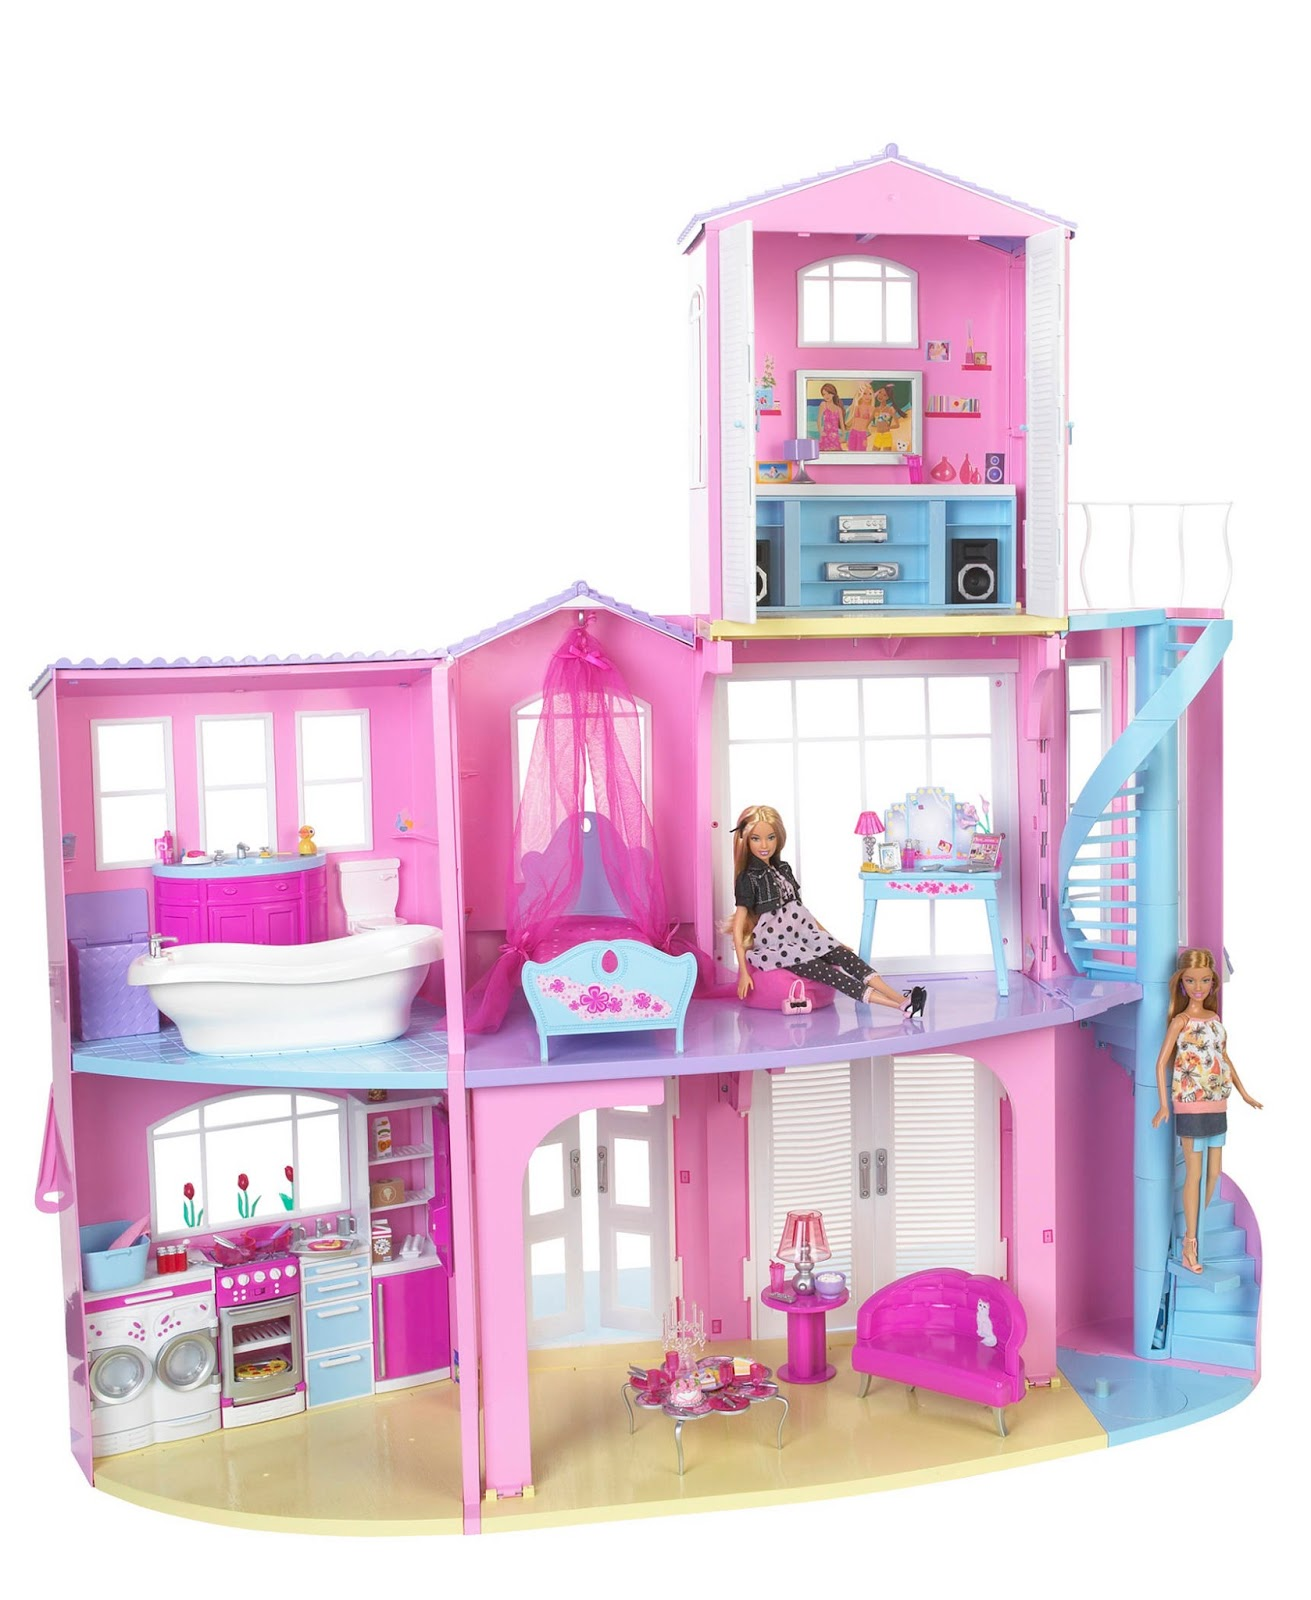 real barbie dream house games